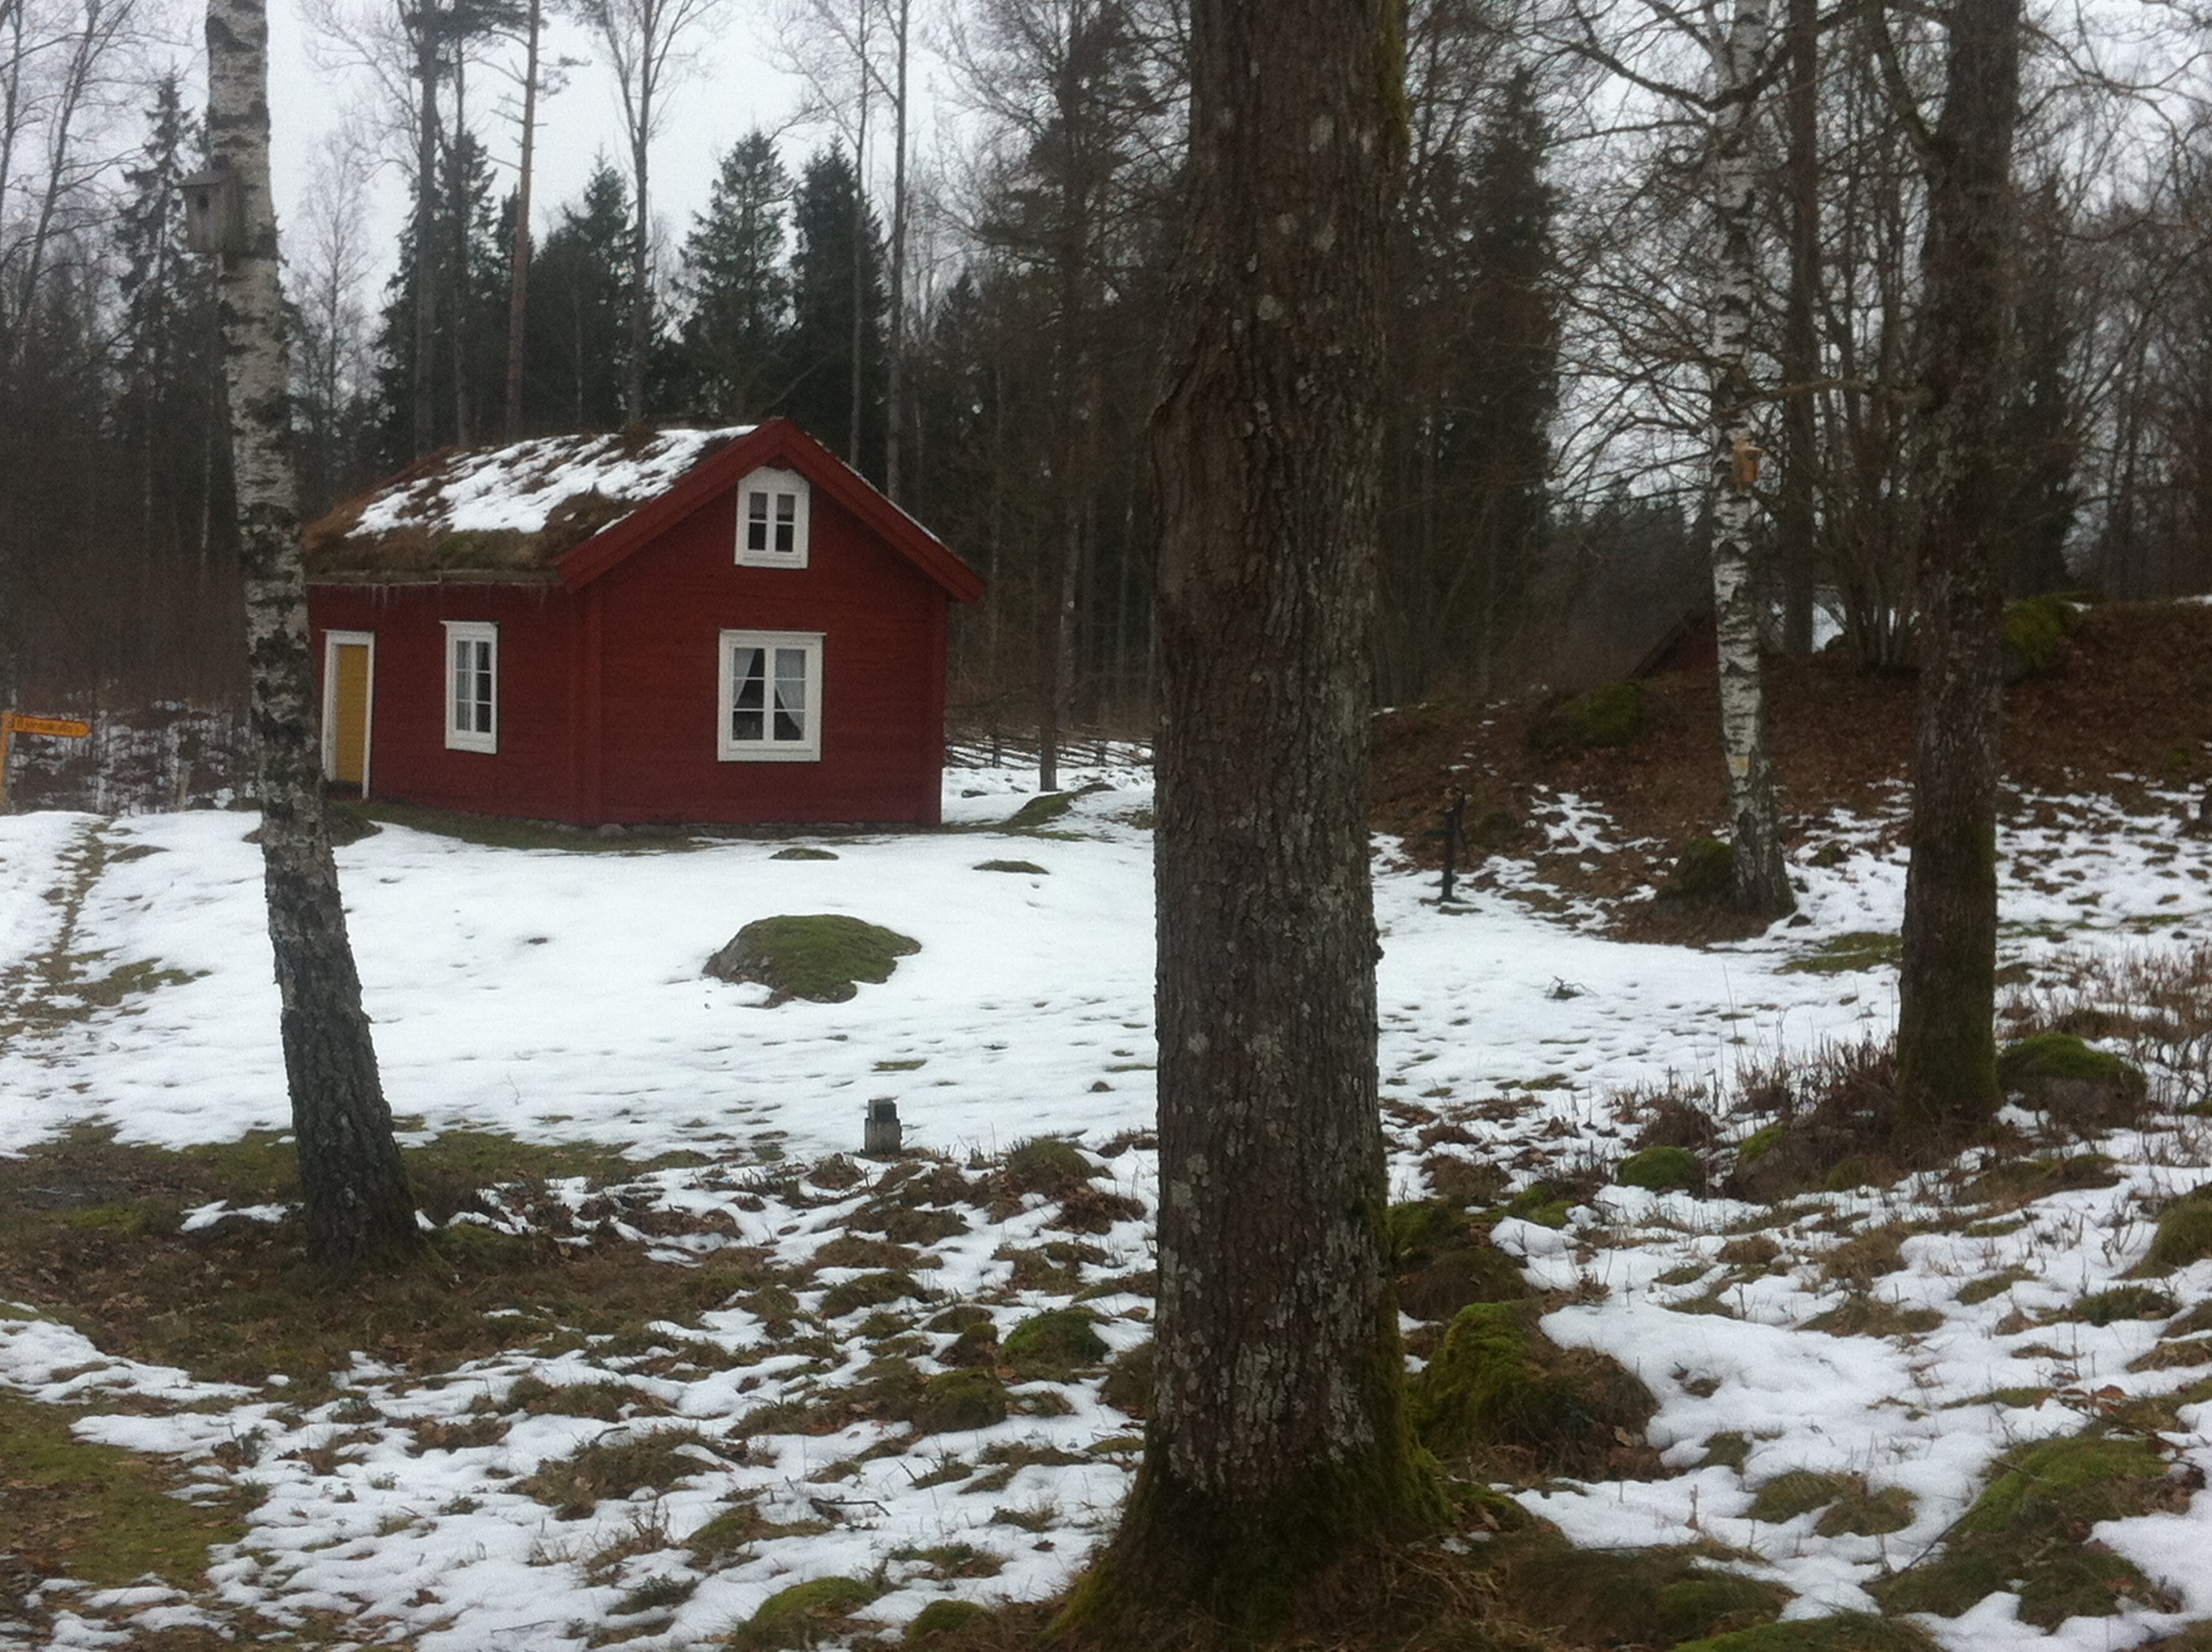 Sweden, Småland in february. Scandinavian Knit - storytelling